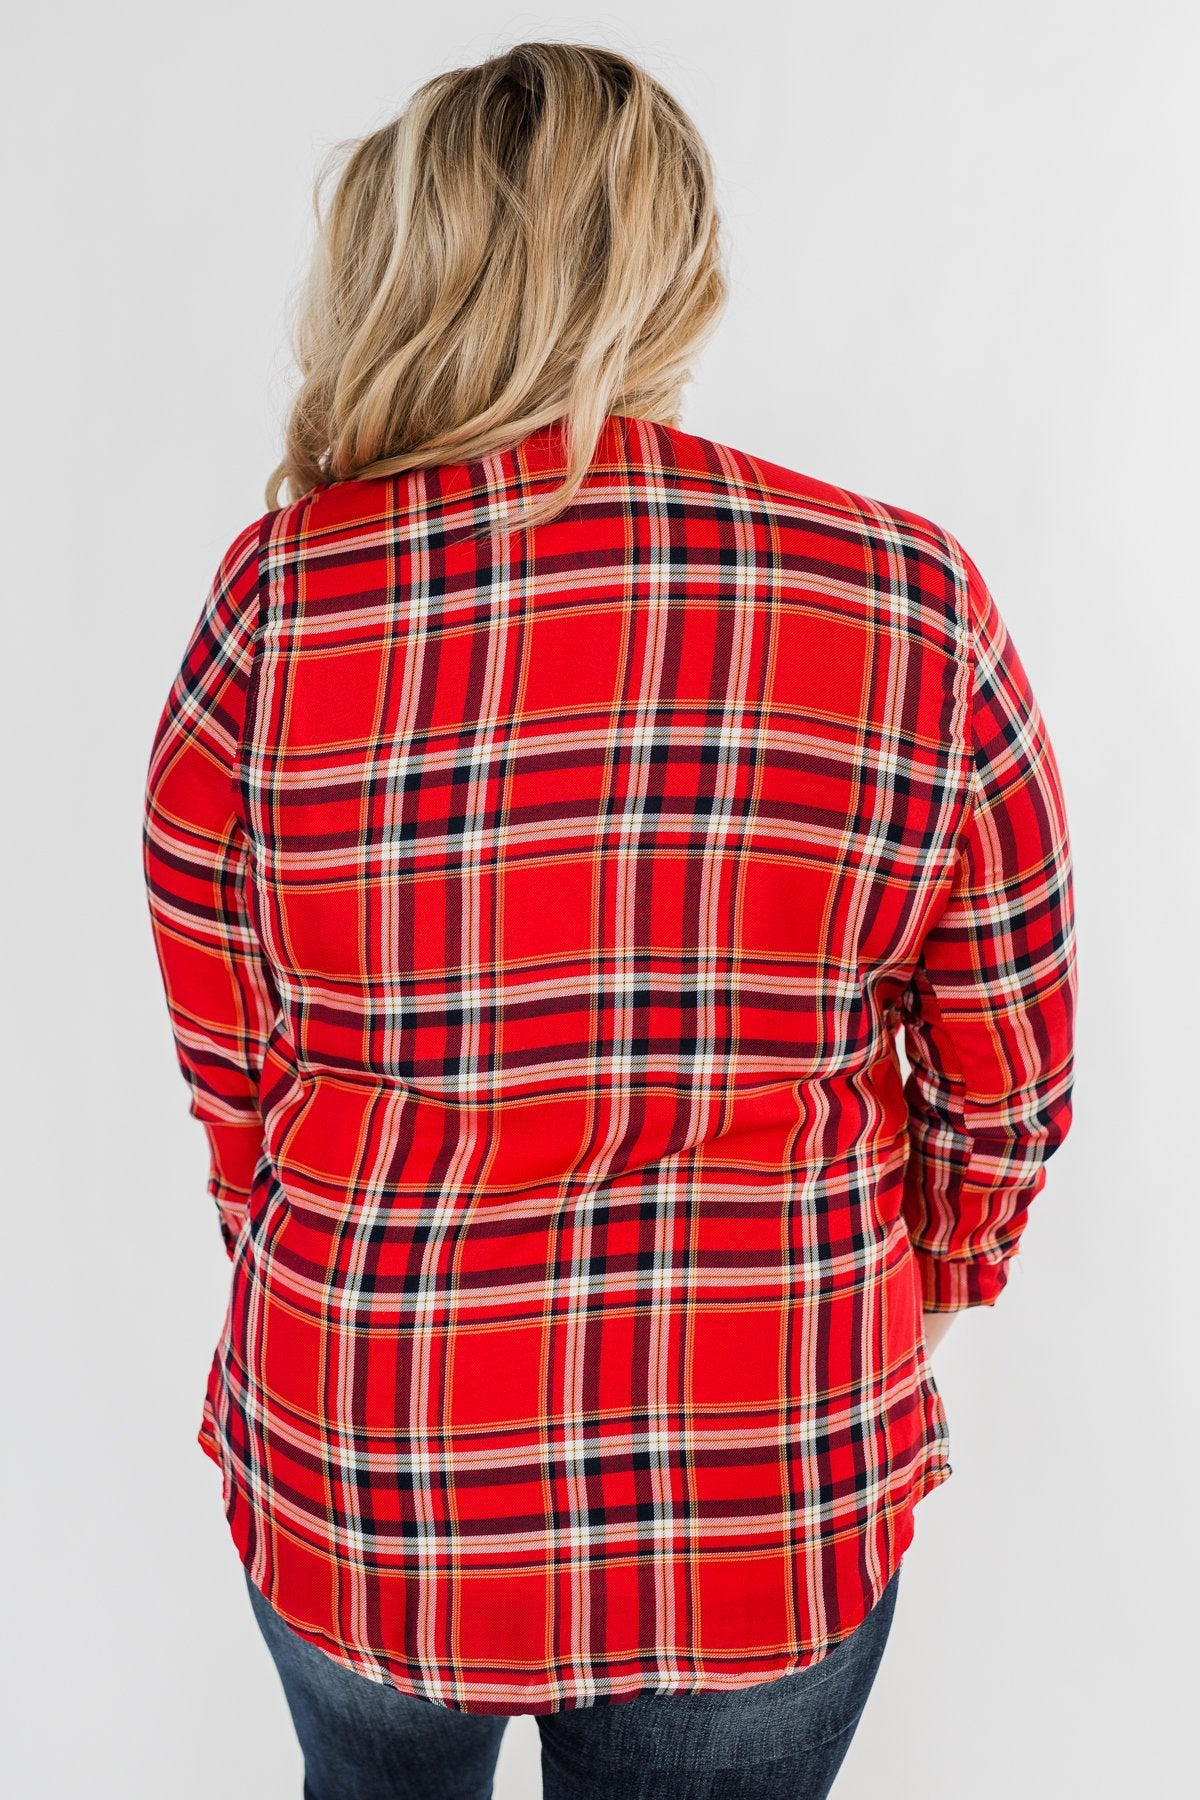 Hello Flannel Button Up Top- Red, Yellow, & Navy